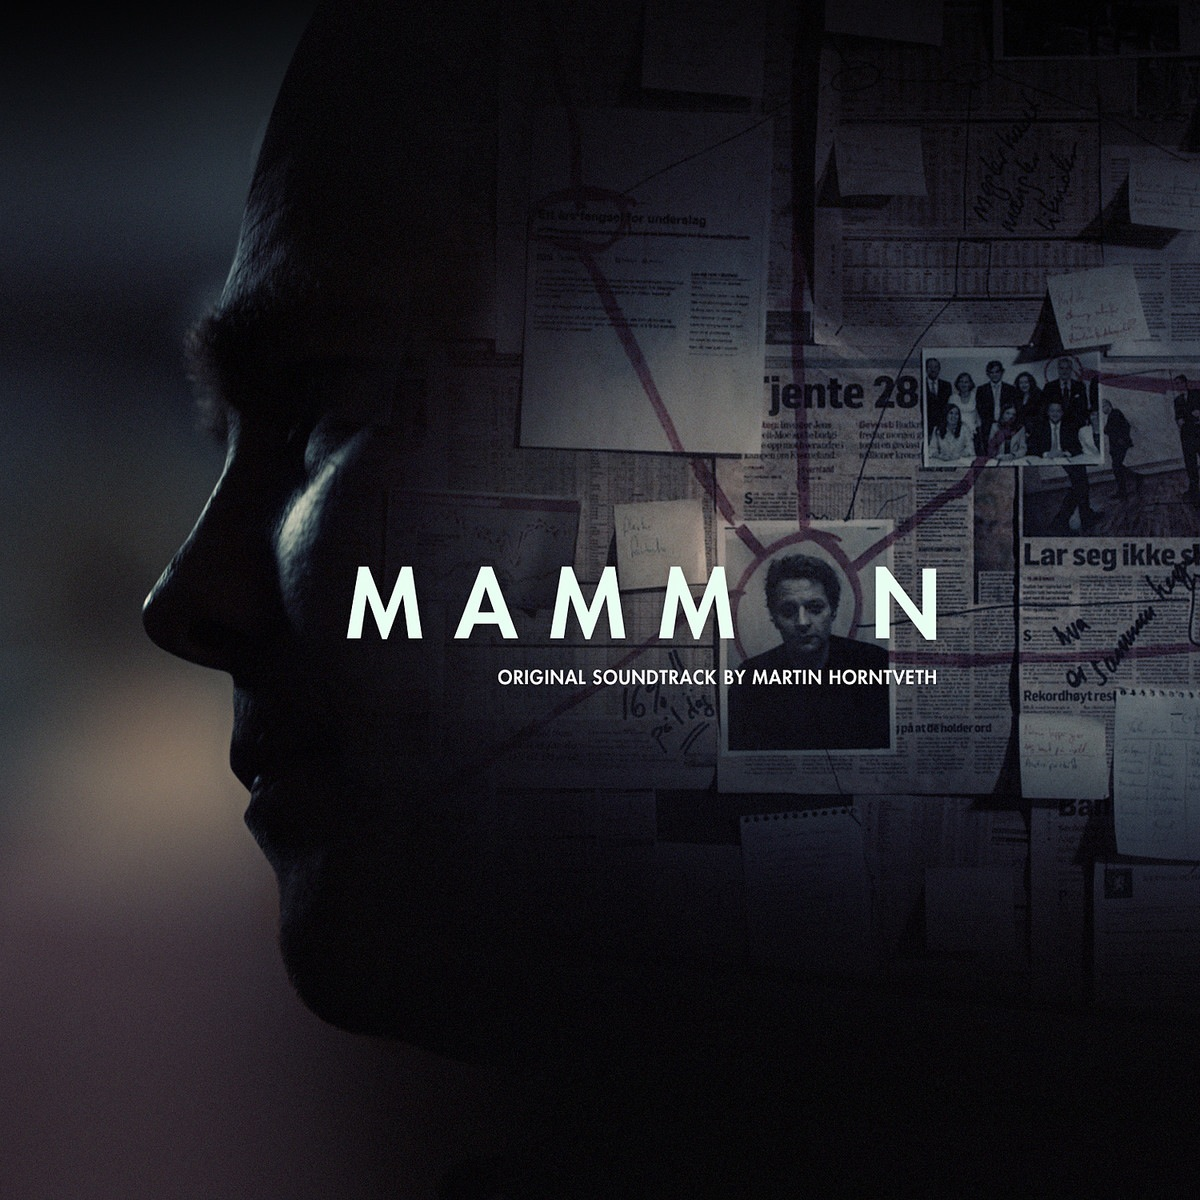 Mammon Album Cover